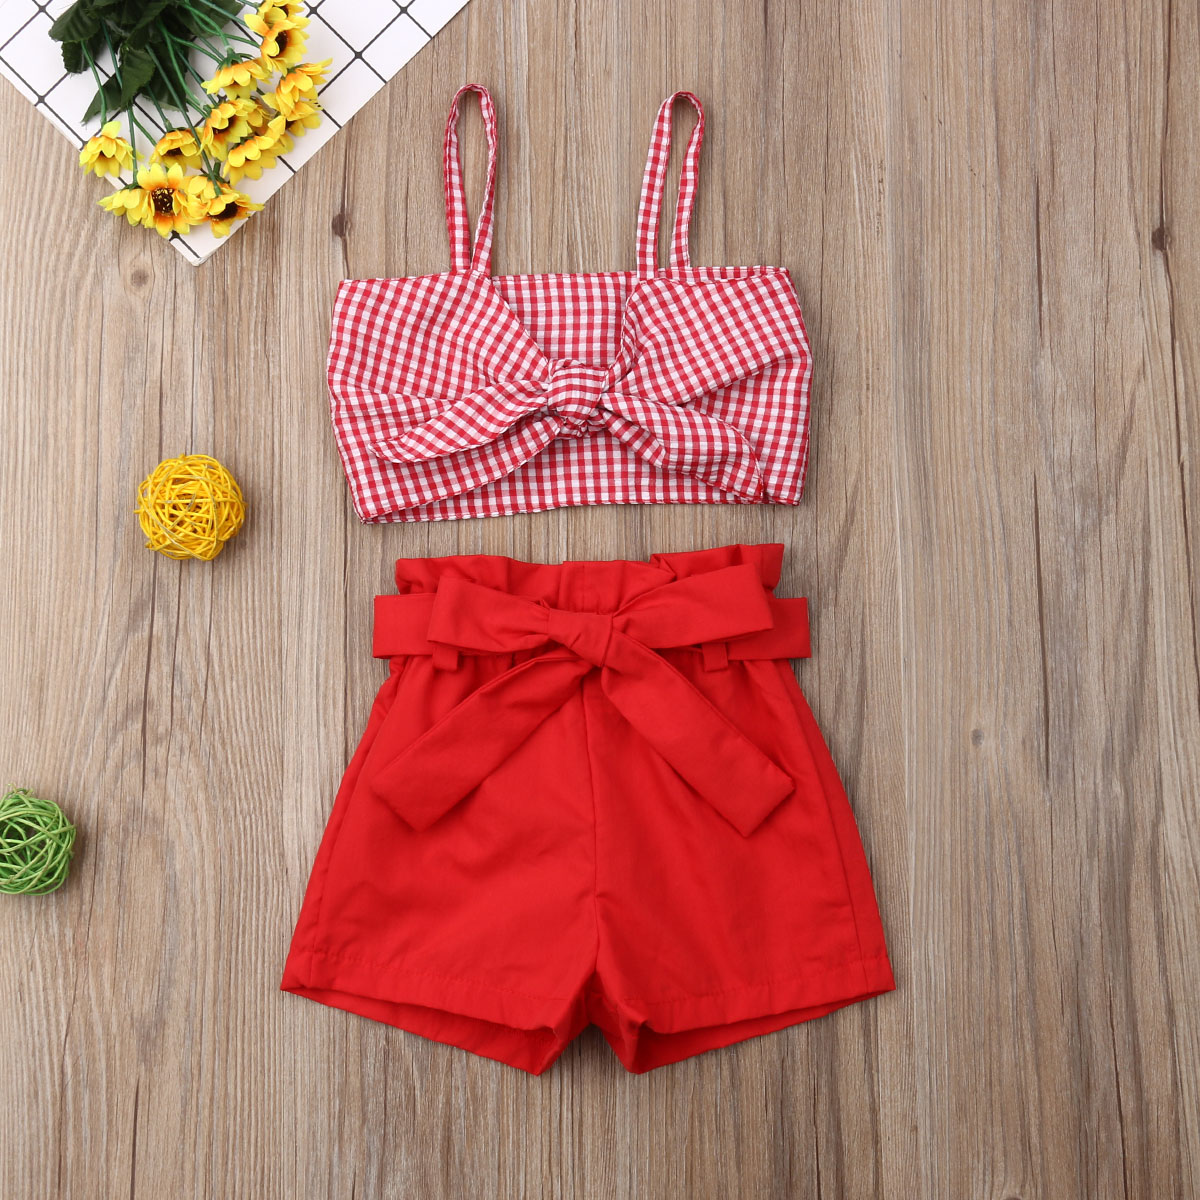 Pudcoco Newest Fashion Toddler Baby Girl Clothes Bowknot Plaids Strap Crop Tops Short Pants 2PCS Outfits Summer Clothes